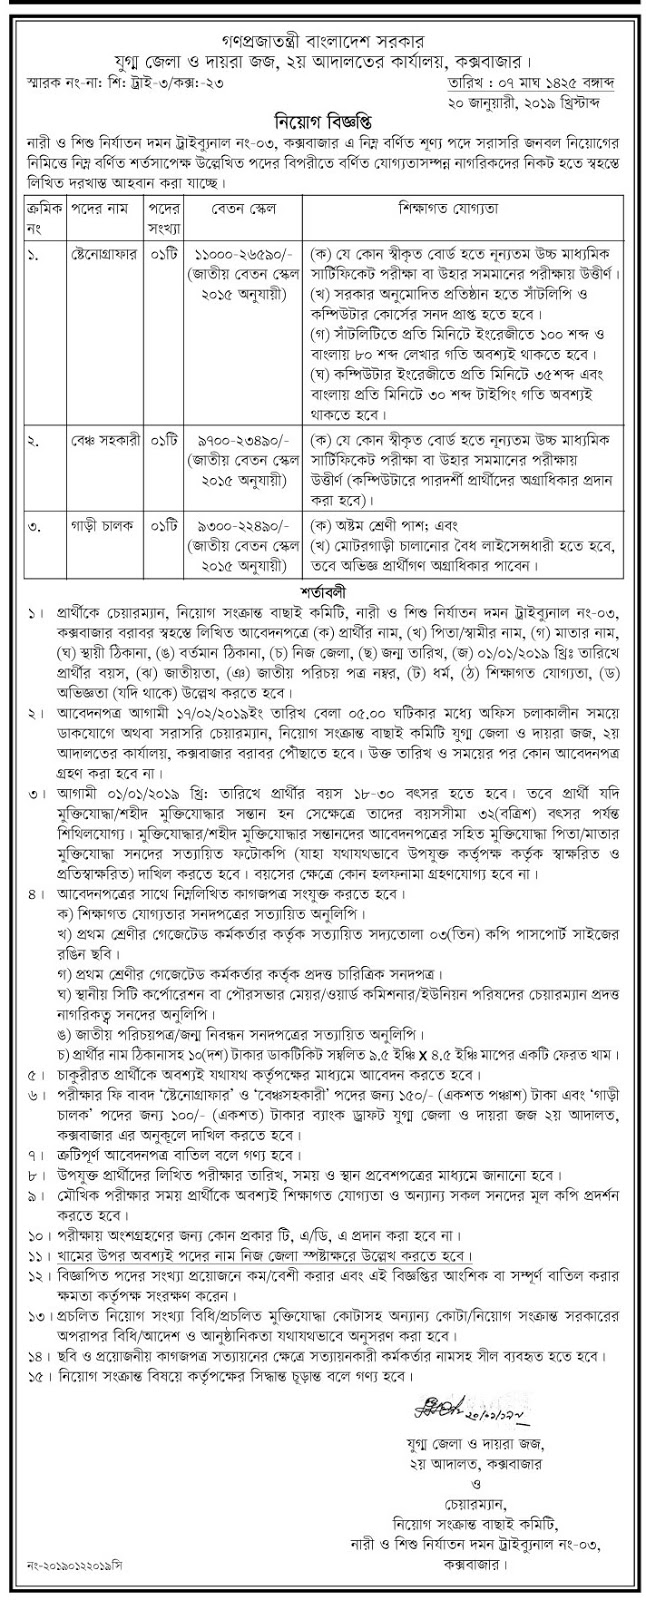 Joint District and Sessions Judge, Cox's Bazar Job Circular 2019